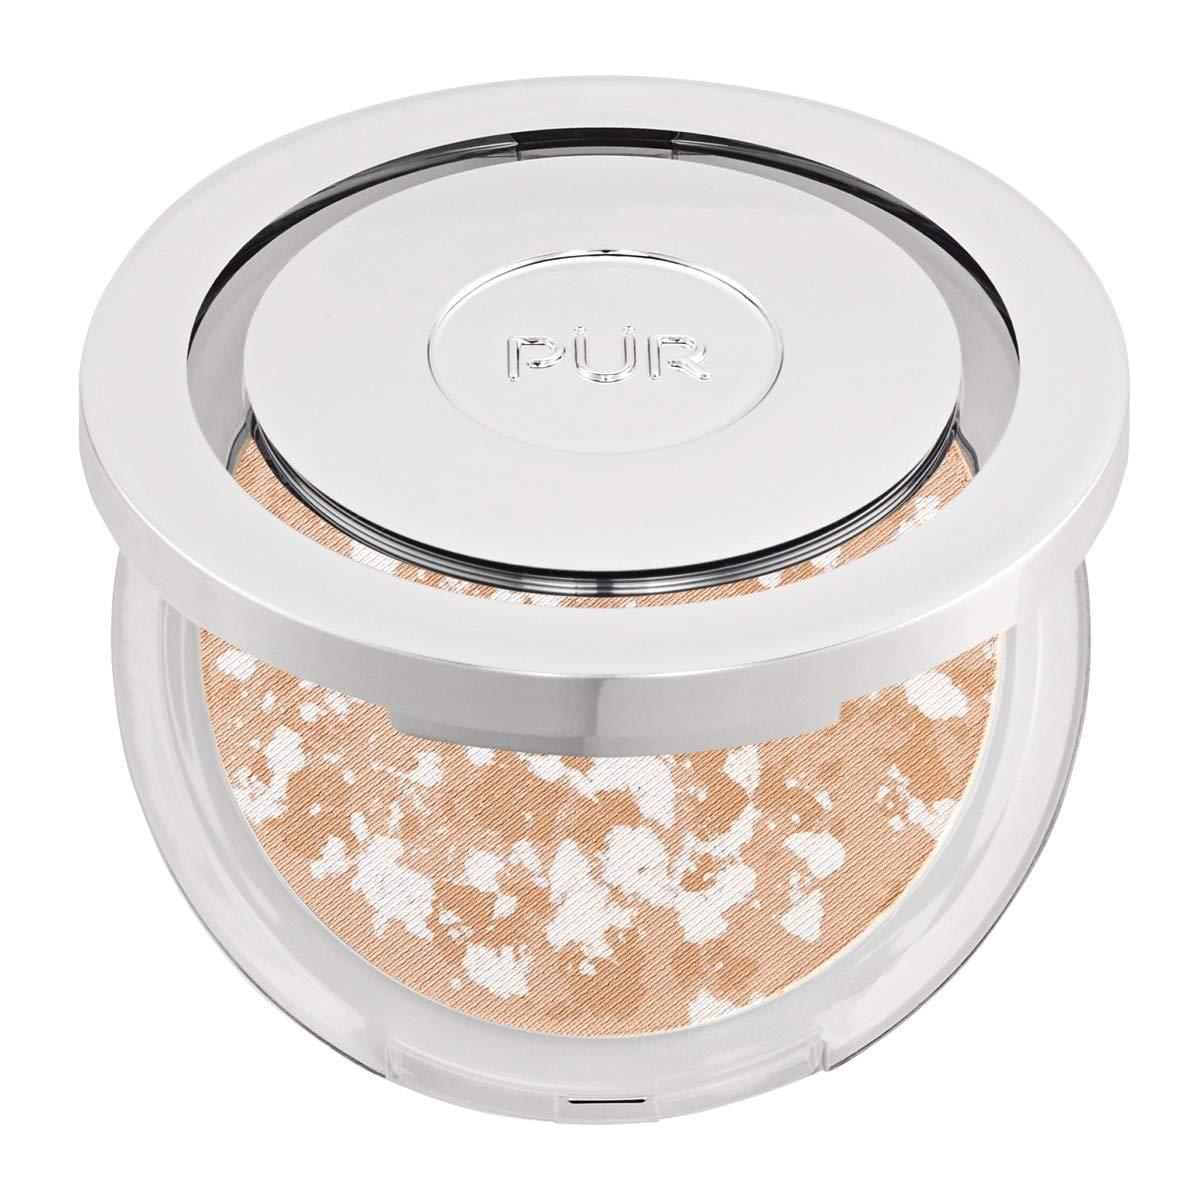 PÜR Skin Perfecting Powder: Balancing Act